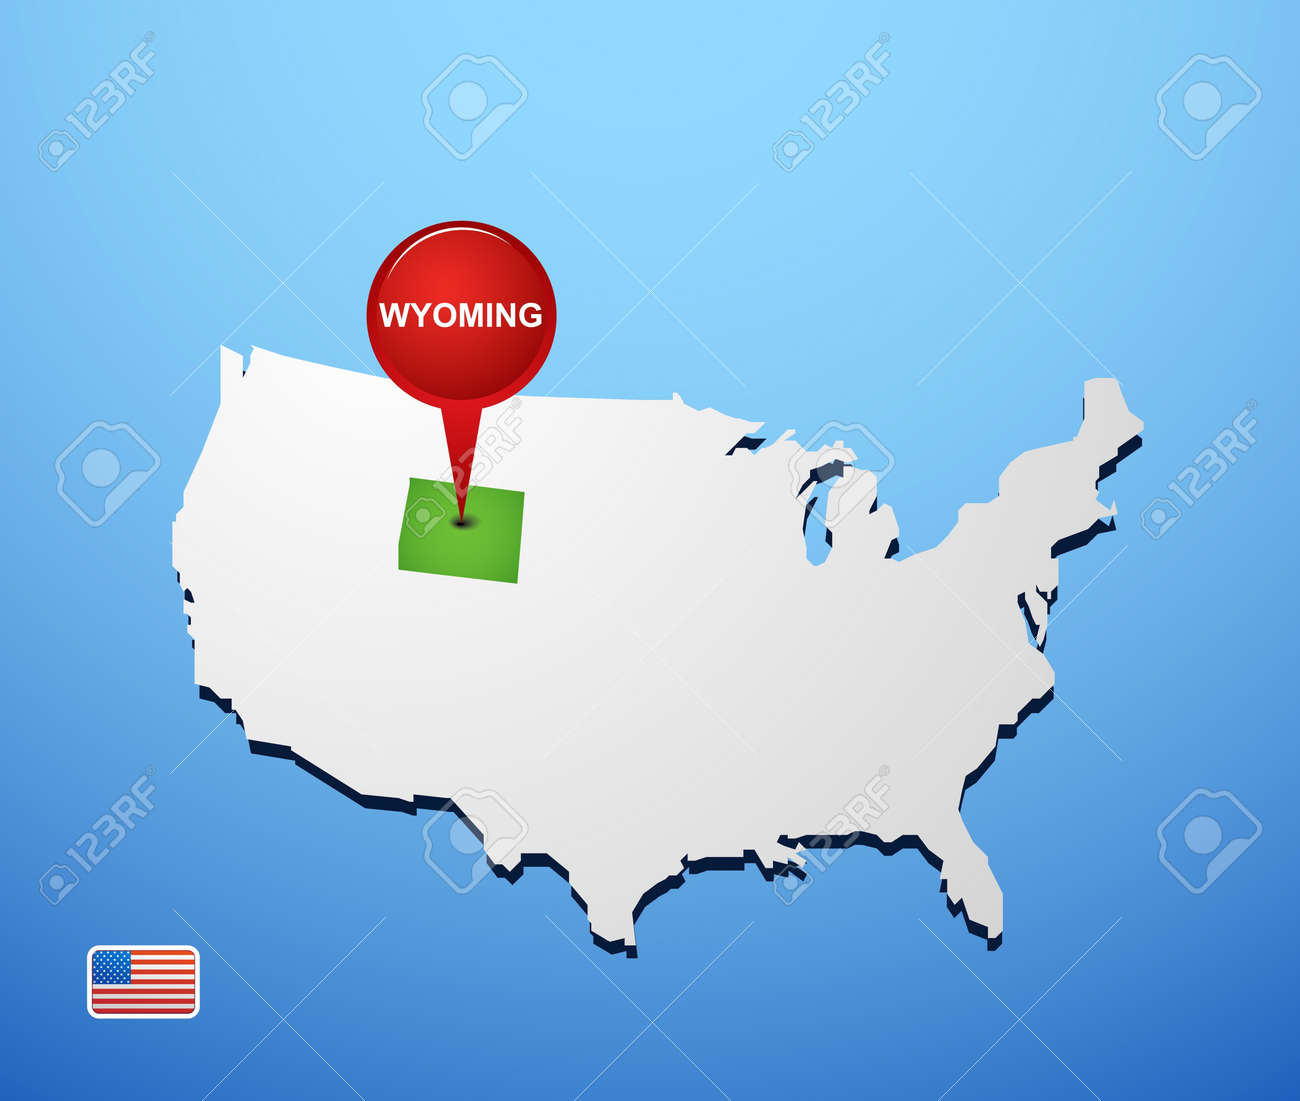 Wyoming On USA Map Royalty Free Cliparts, Vectors, And Stock ...